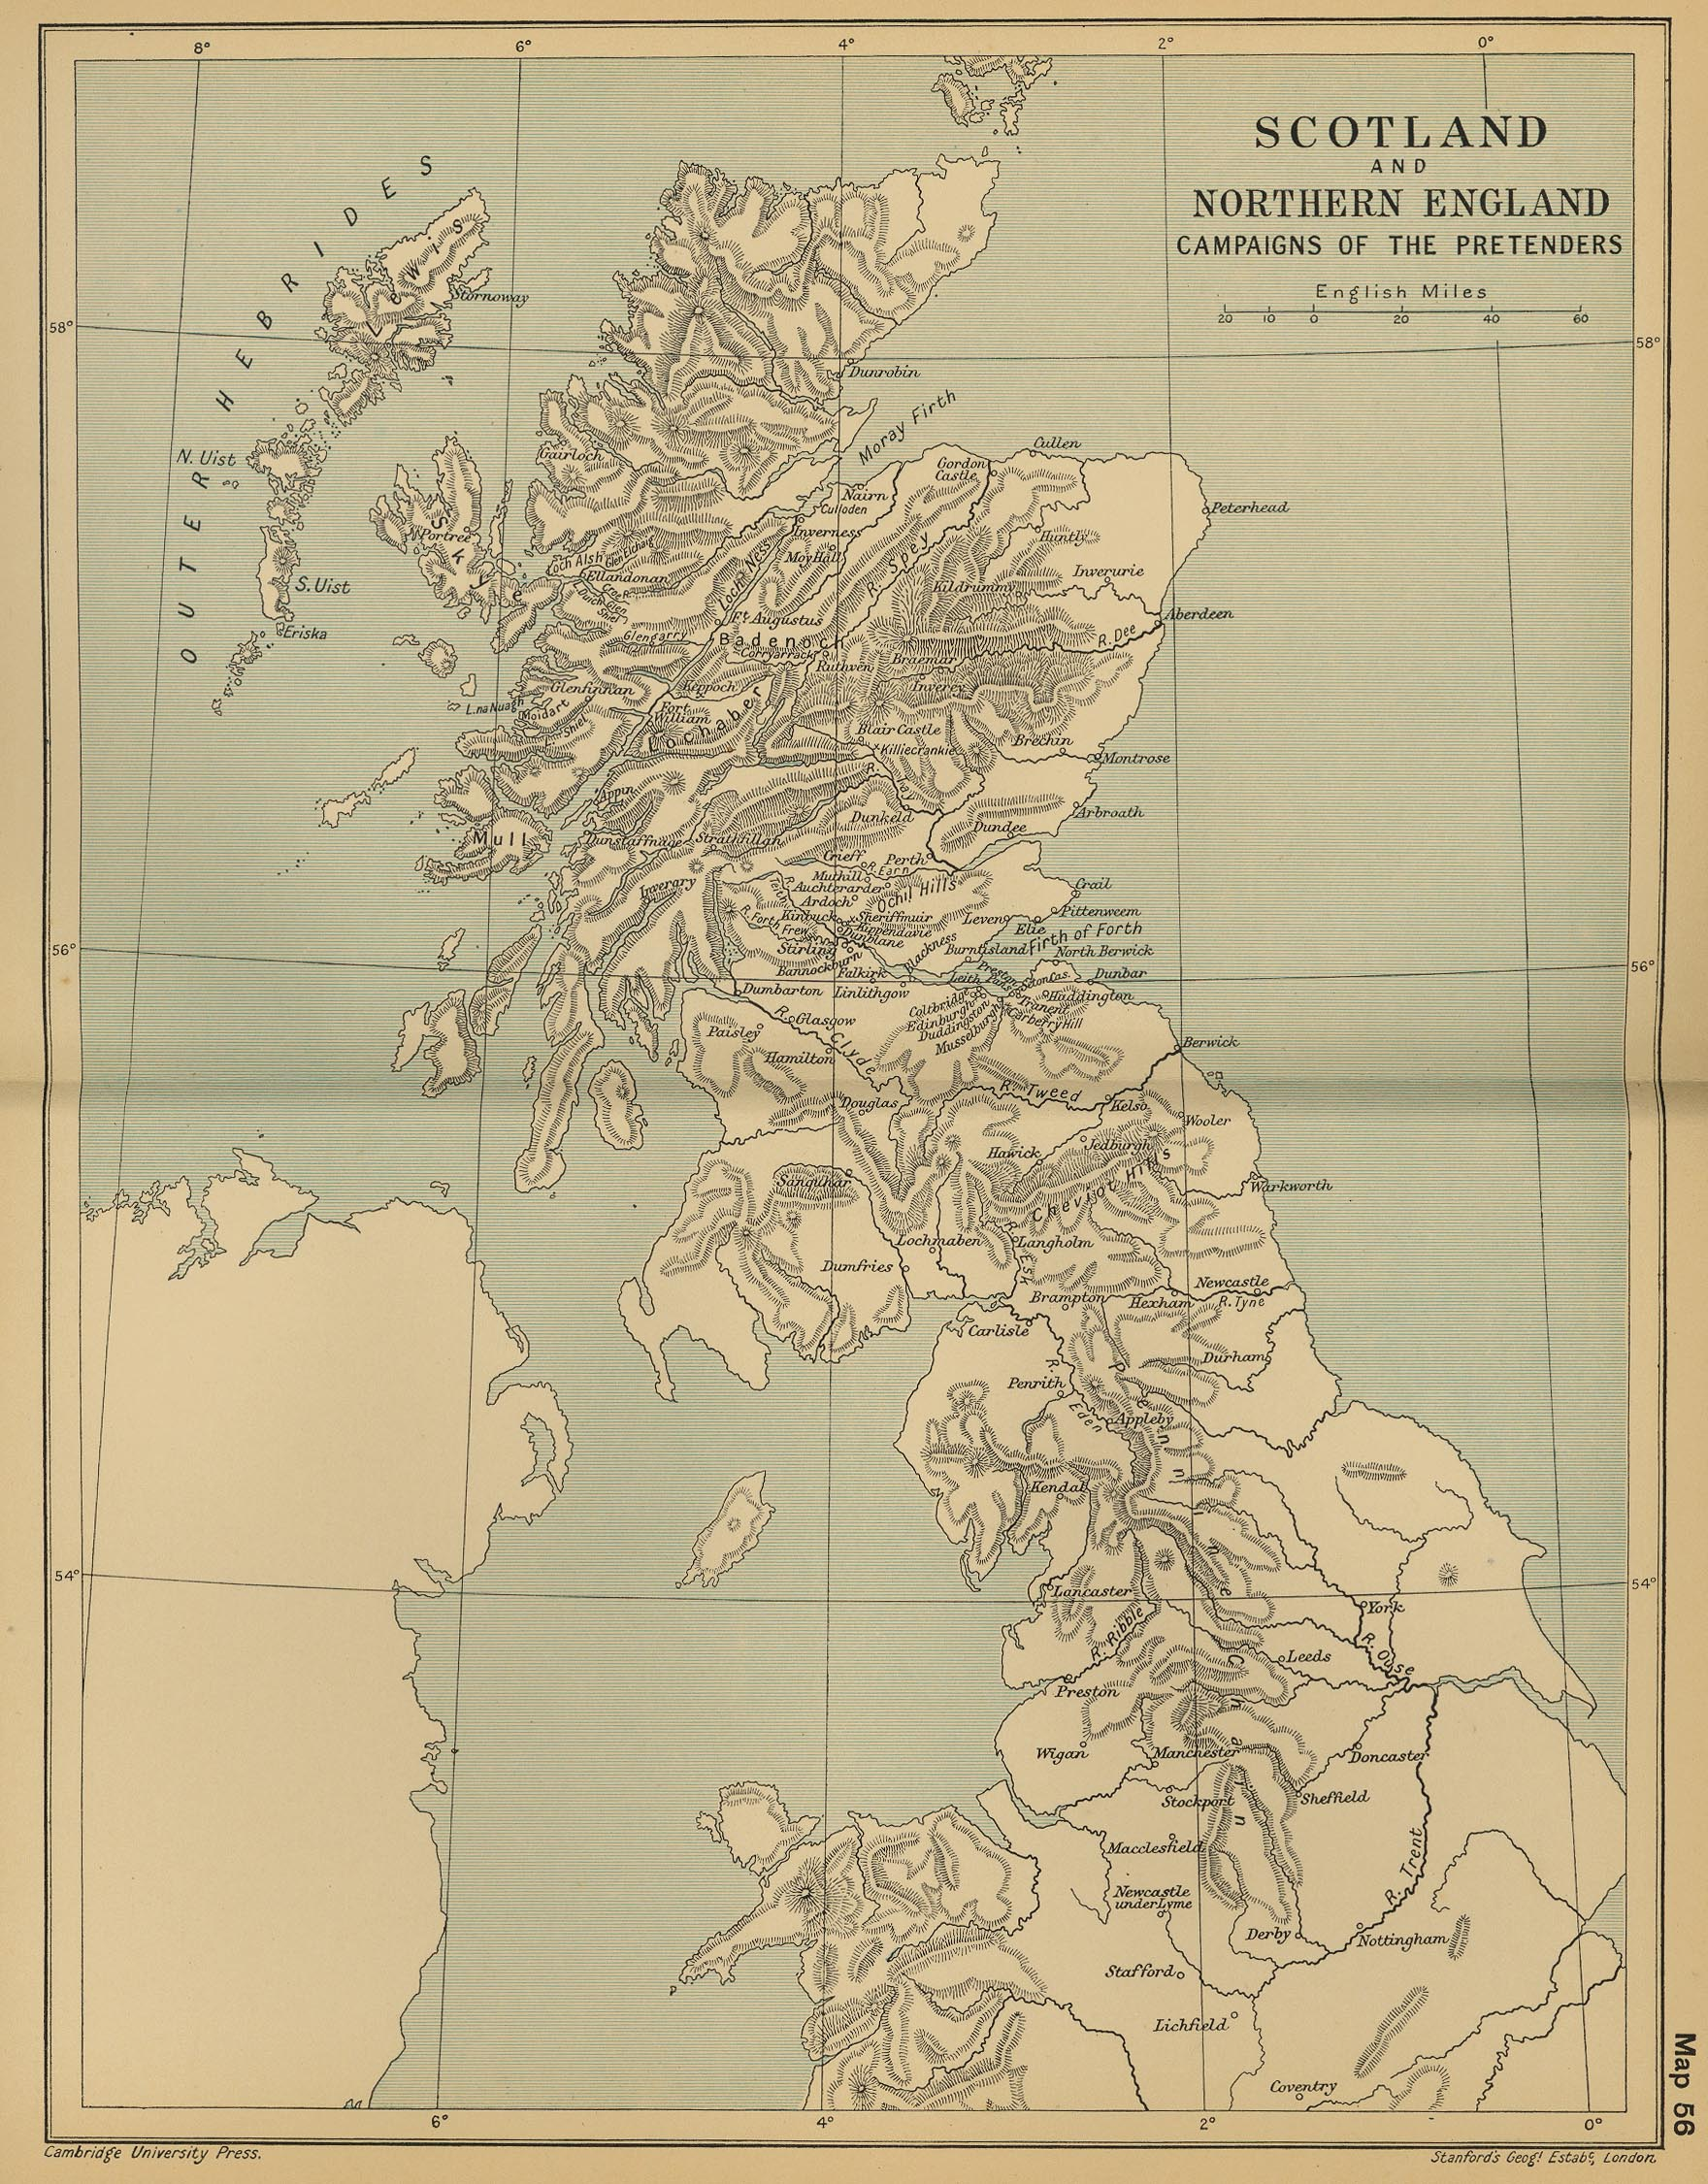 Campaigns of the Pretenders Map, Scotland and Northern England